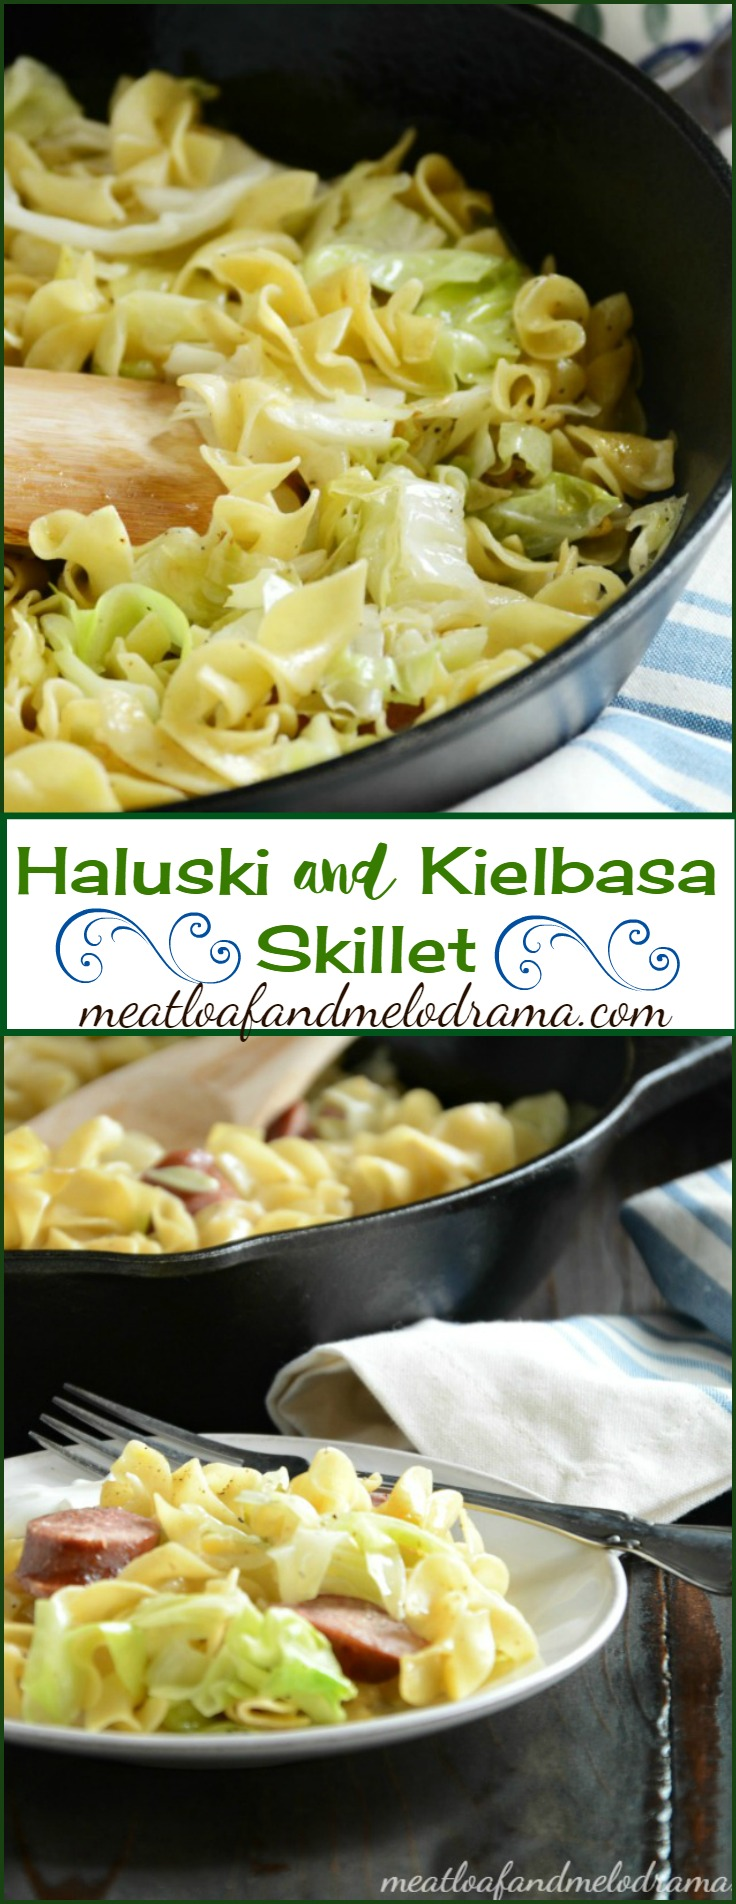 Haluski and Kielbasa - Fried Noodles and Cabbage with Polish Sausage